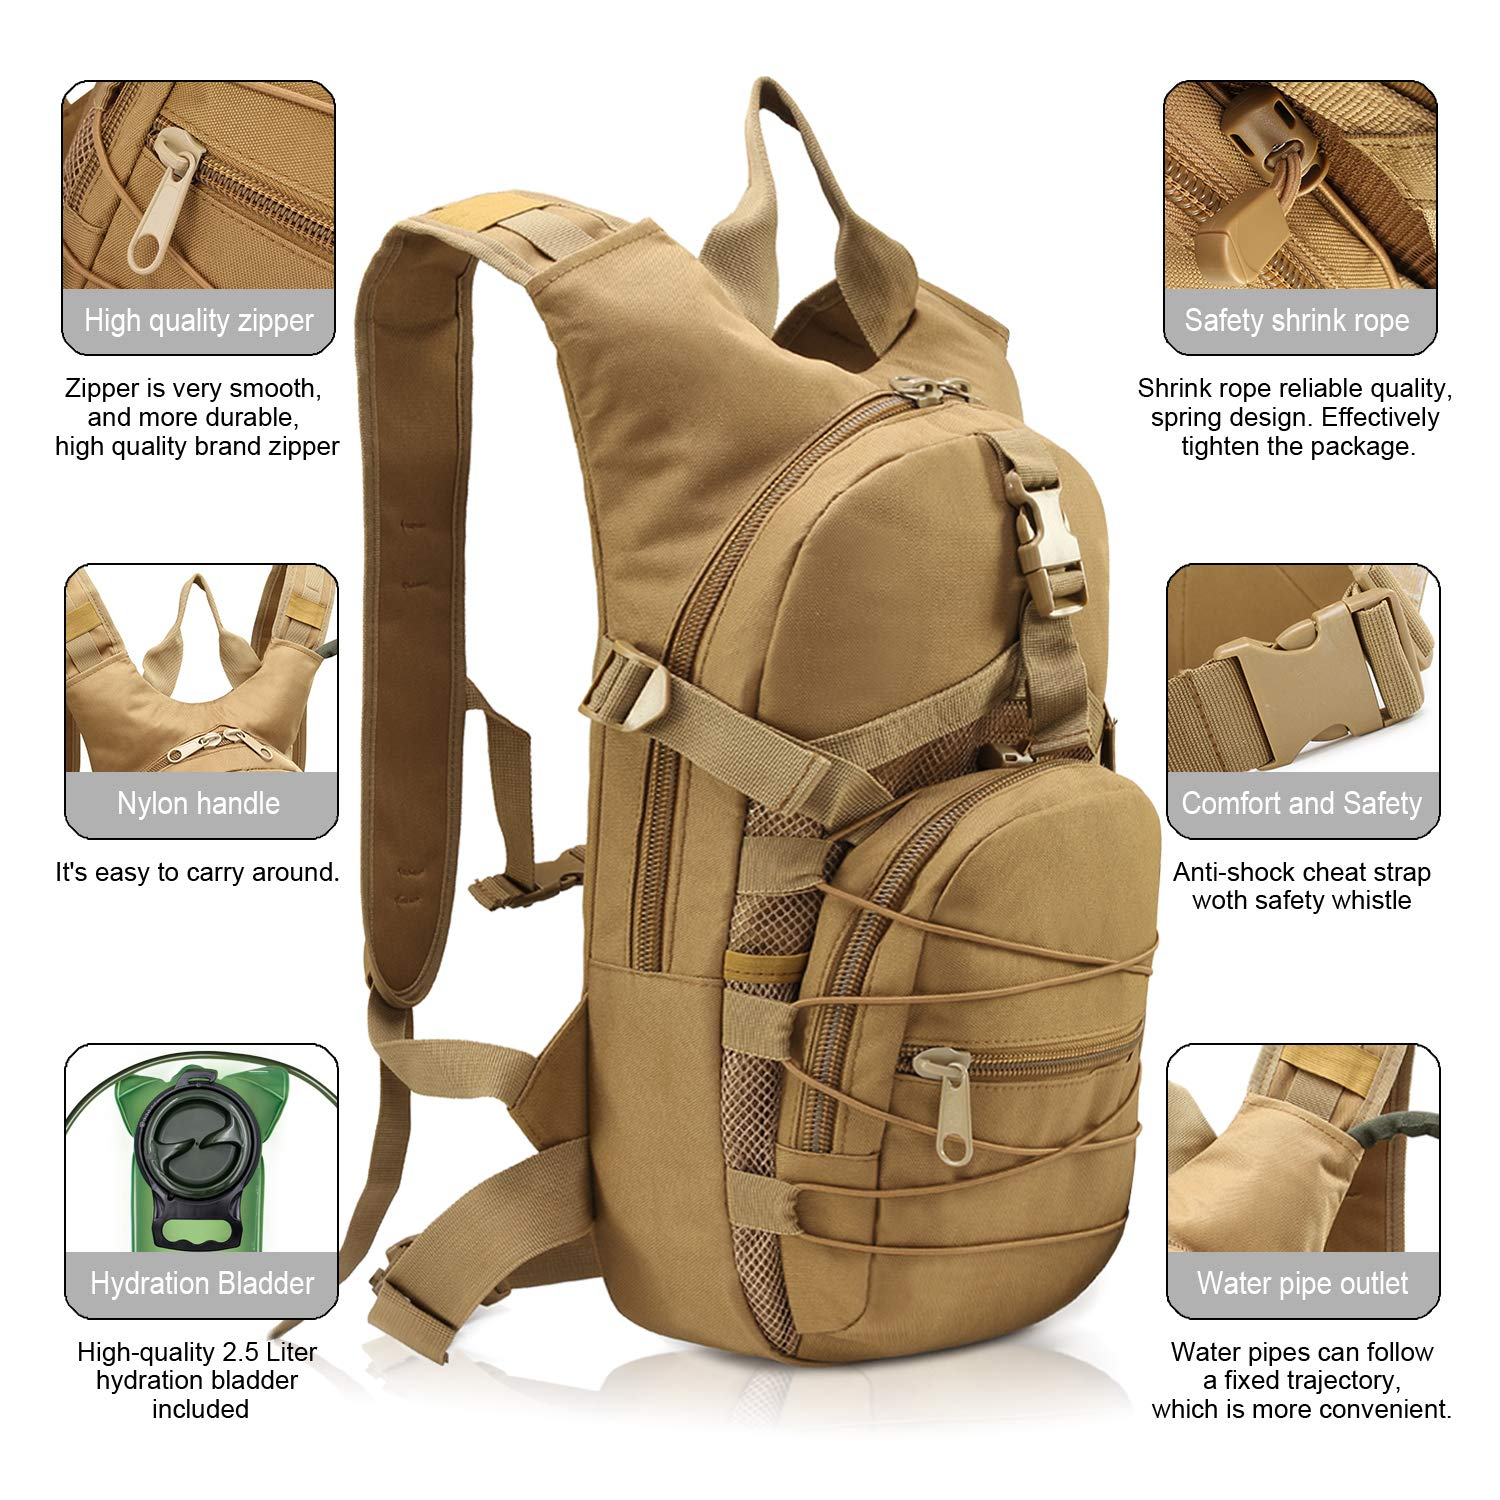 YONLE Tactical Hydration Pack Backpack Water Backpack with 2.5L Bladder for Hiking Biking Running Walking and Climbing